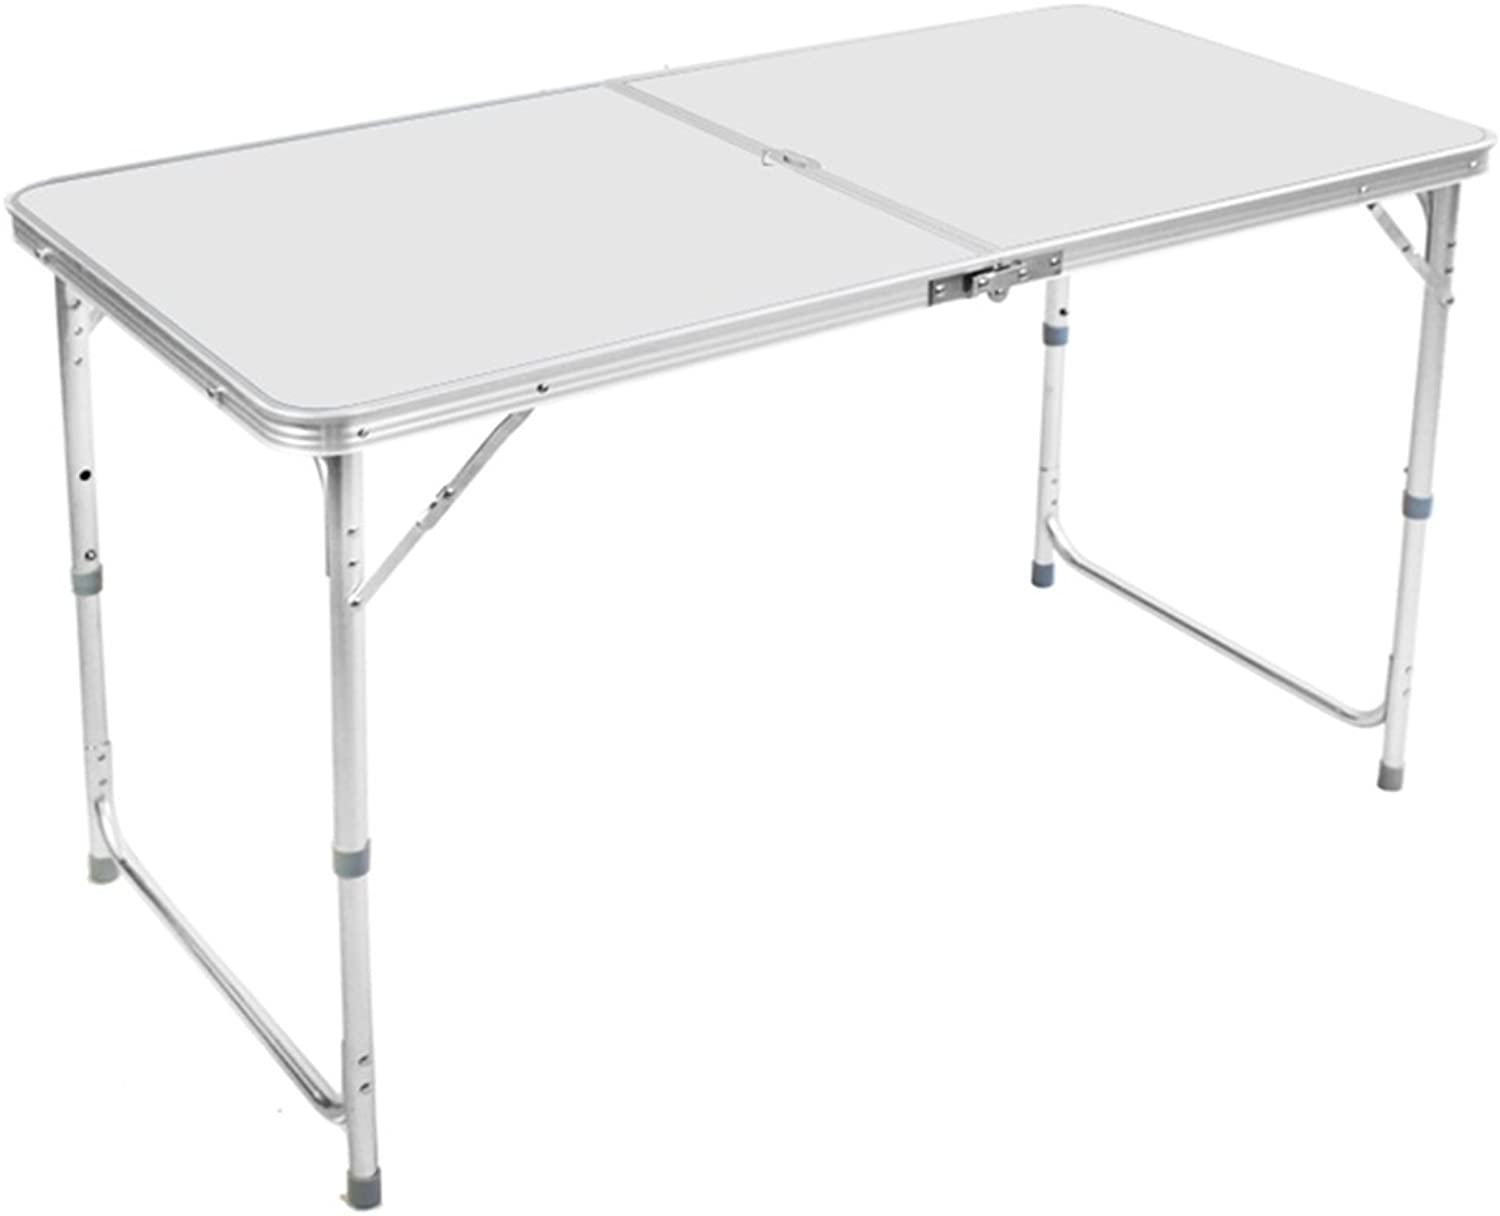 ZZHF zhuozi Folding Table    Double Pole Reinforcement Convenient Portable Folding   Dining Table Household Folding Desk Camping Folding Table (color   A)